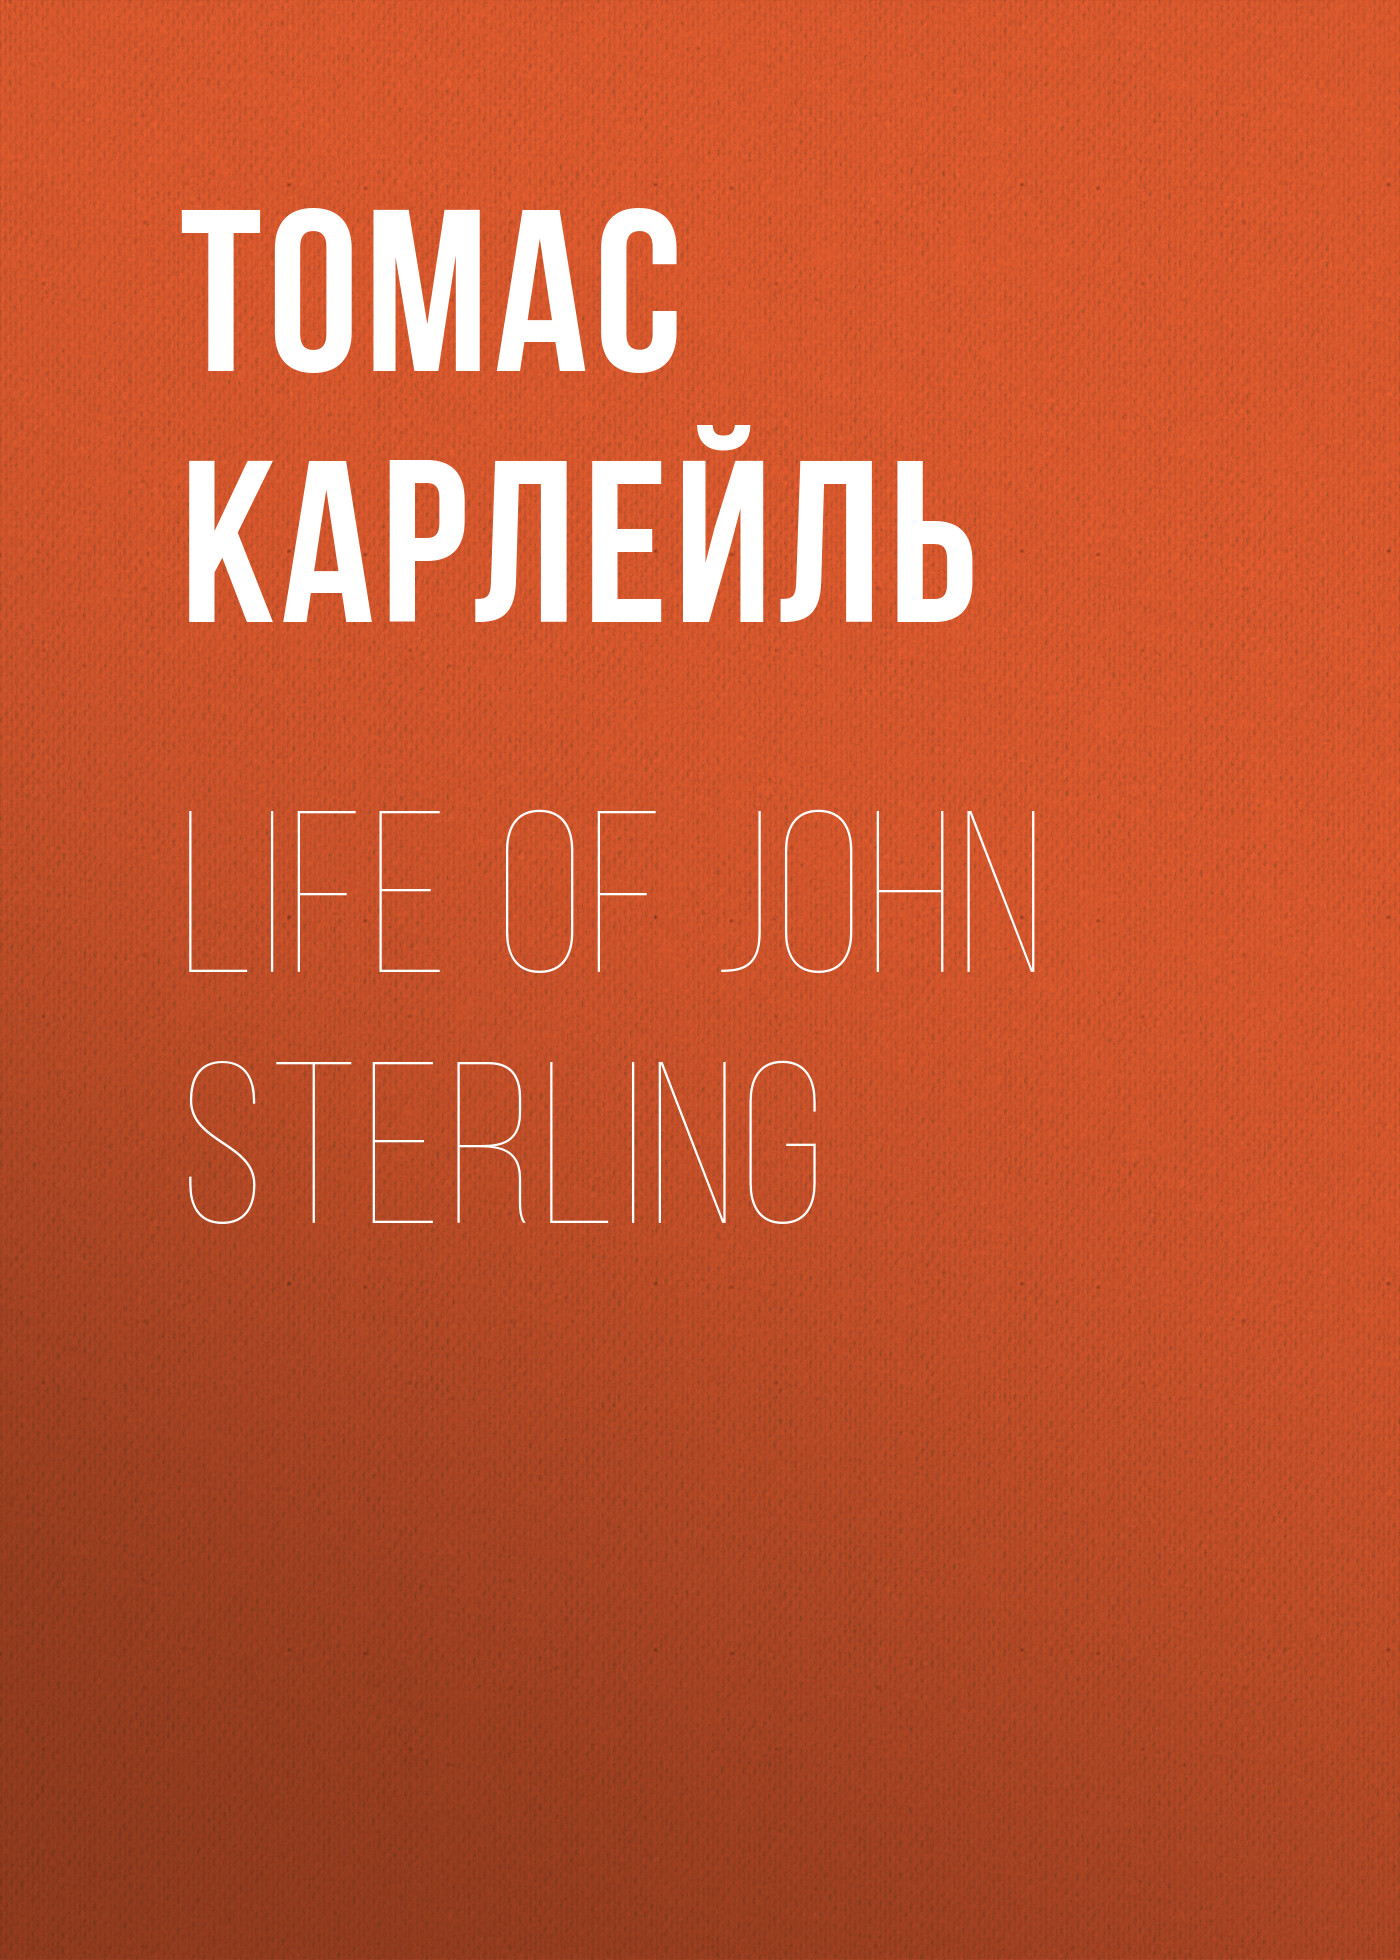 Томас Карлейль Life of John Sterling томас карлейль life of john sterling